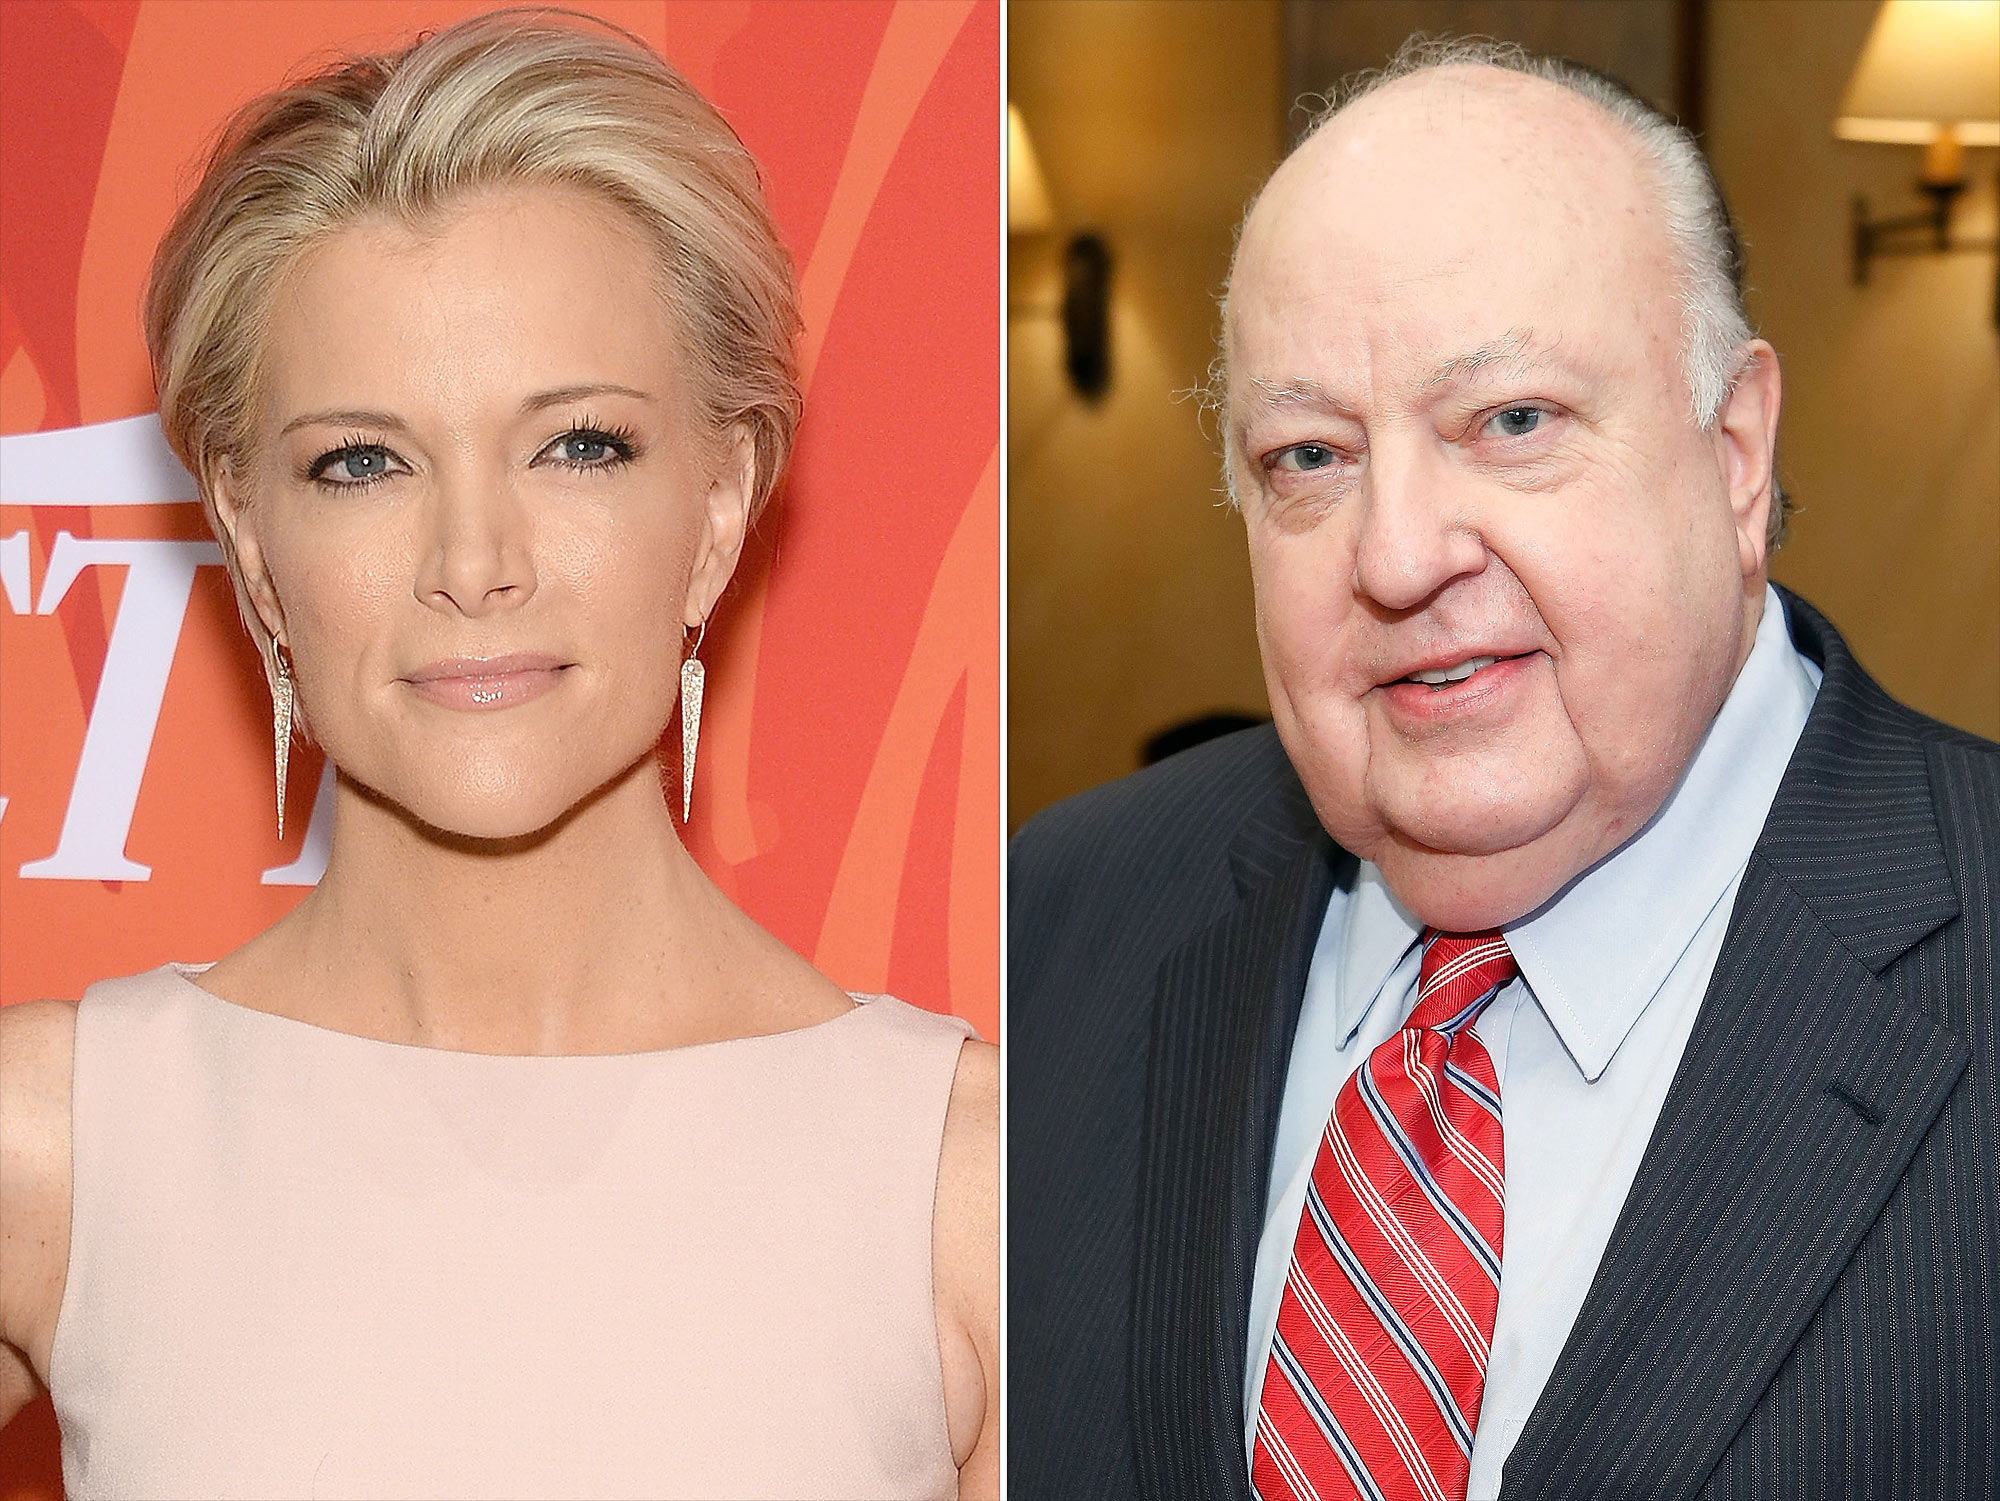 Megyn Kelly and Roger Ailes - News